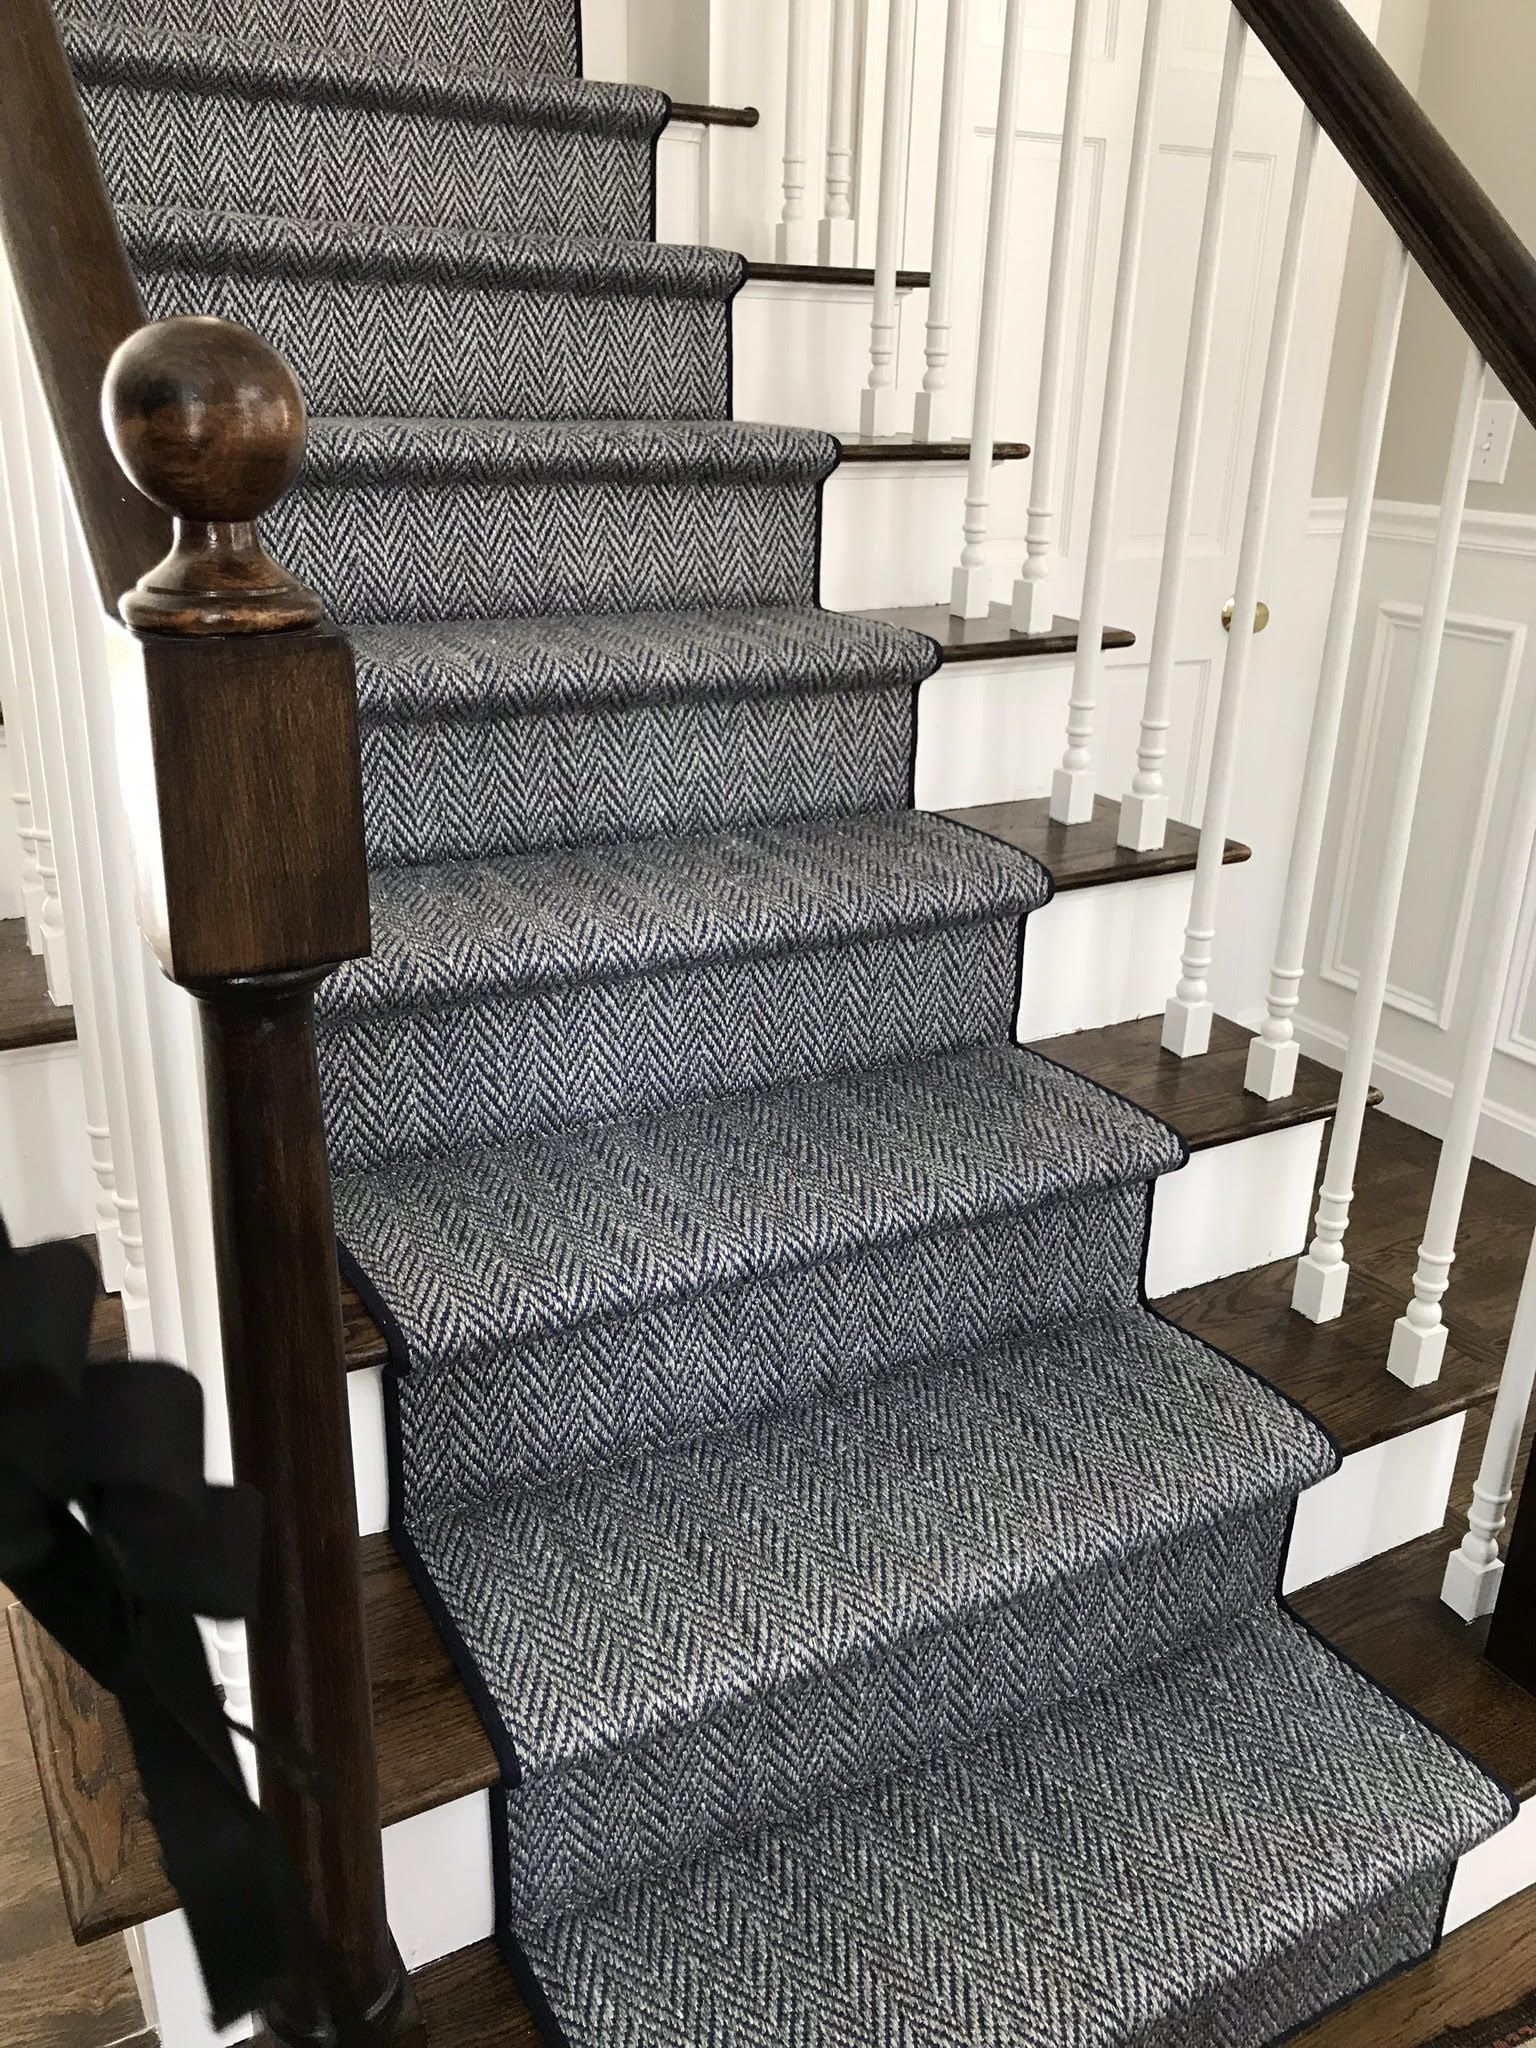 Another Install For A Hollywood Herringbone Stair Runner For A Great Customer Over In Milton Ma We Have A Ton Stair Runner Carpet Stair Runner Carpet Runner